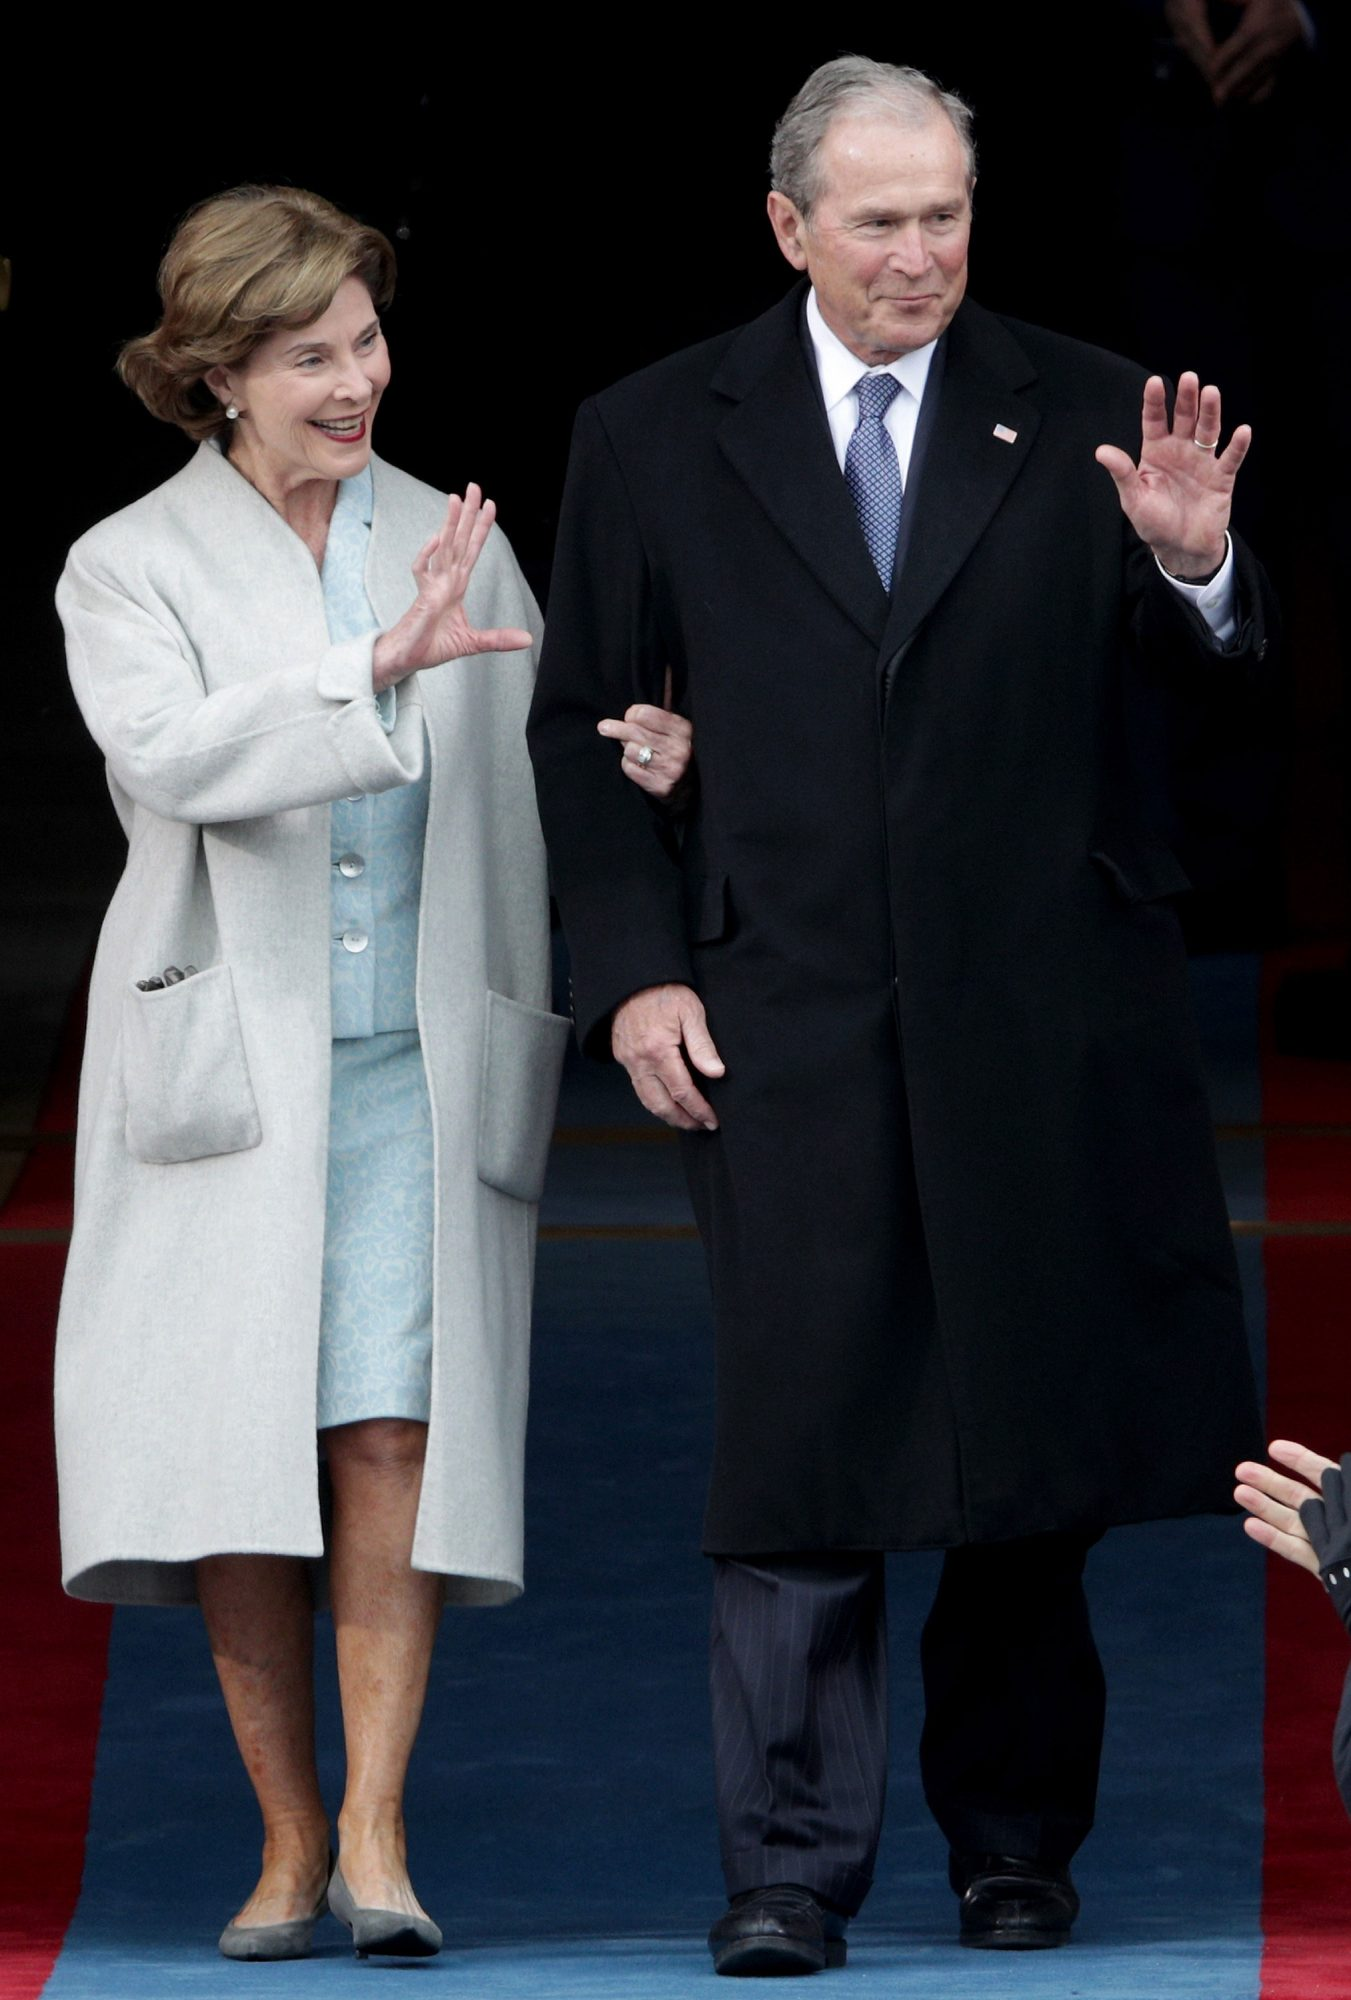 WASHINGTON, DC - JANUARY 20: Former President George W. Bush and Laura Bush wave as they arrive on the West Front of the U.S. Capitol on January 20, 2017 in Washington, DC. In today's inauguration ceremony Donald J. Trump becomes the 45th president of the United States. (Photo by Alex Wong/Getty Images)